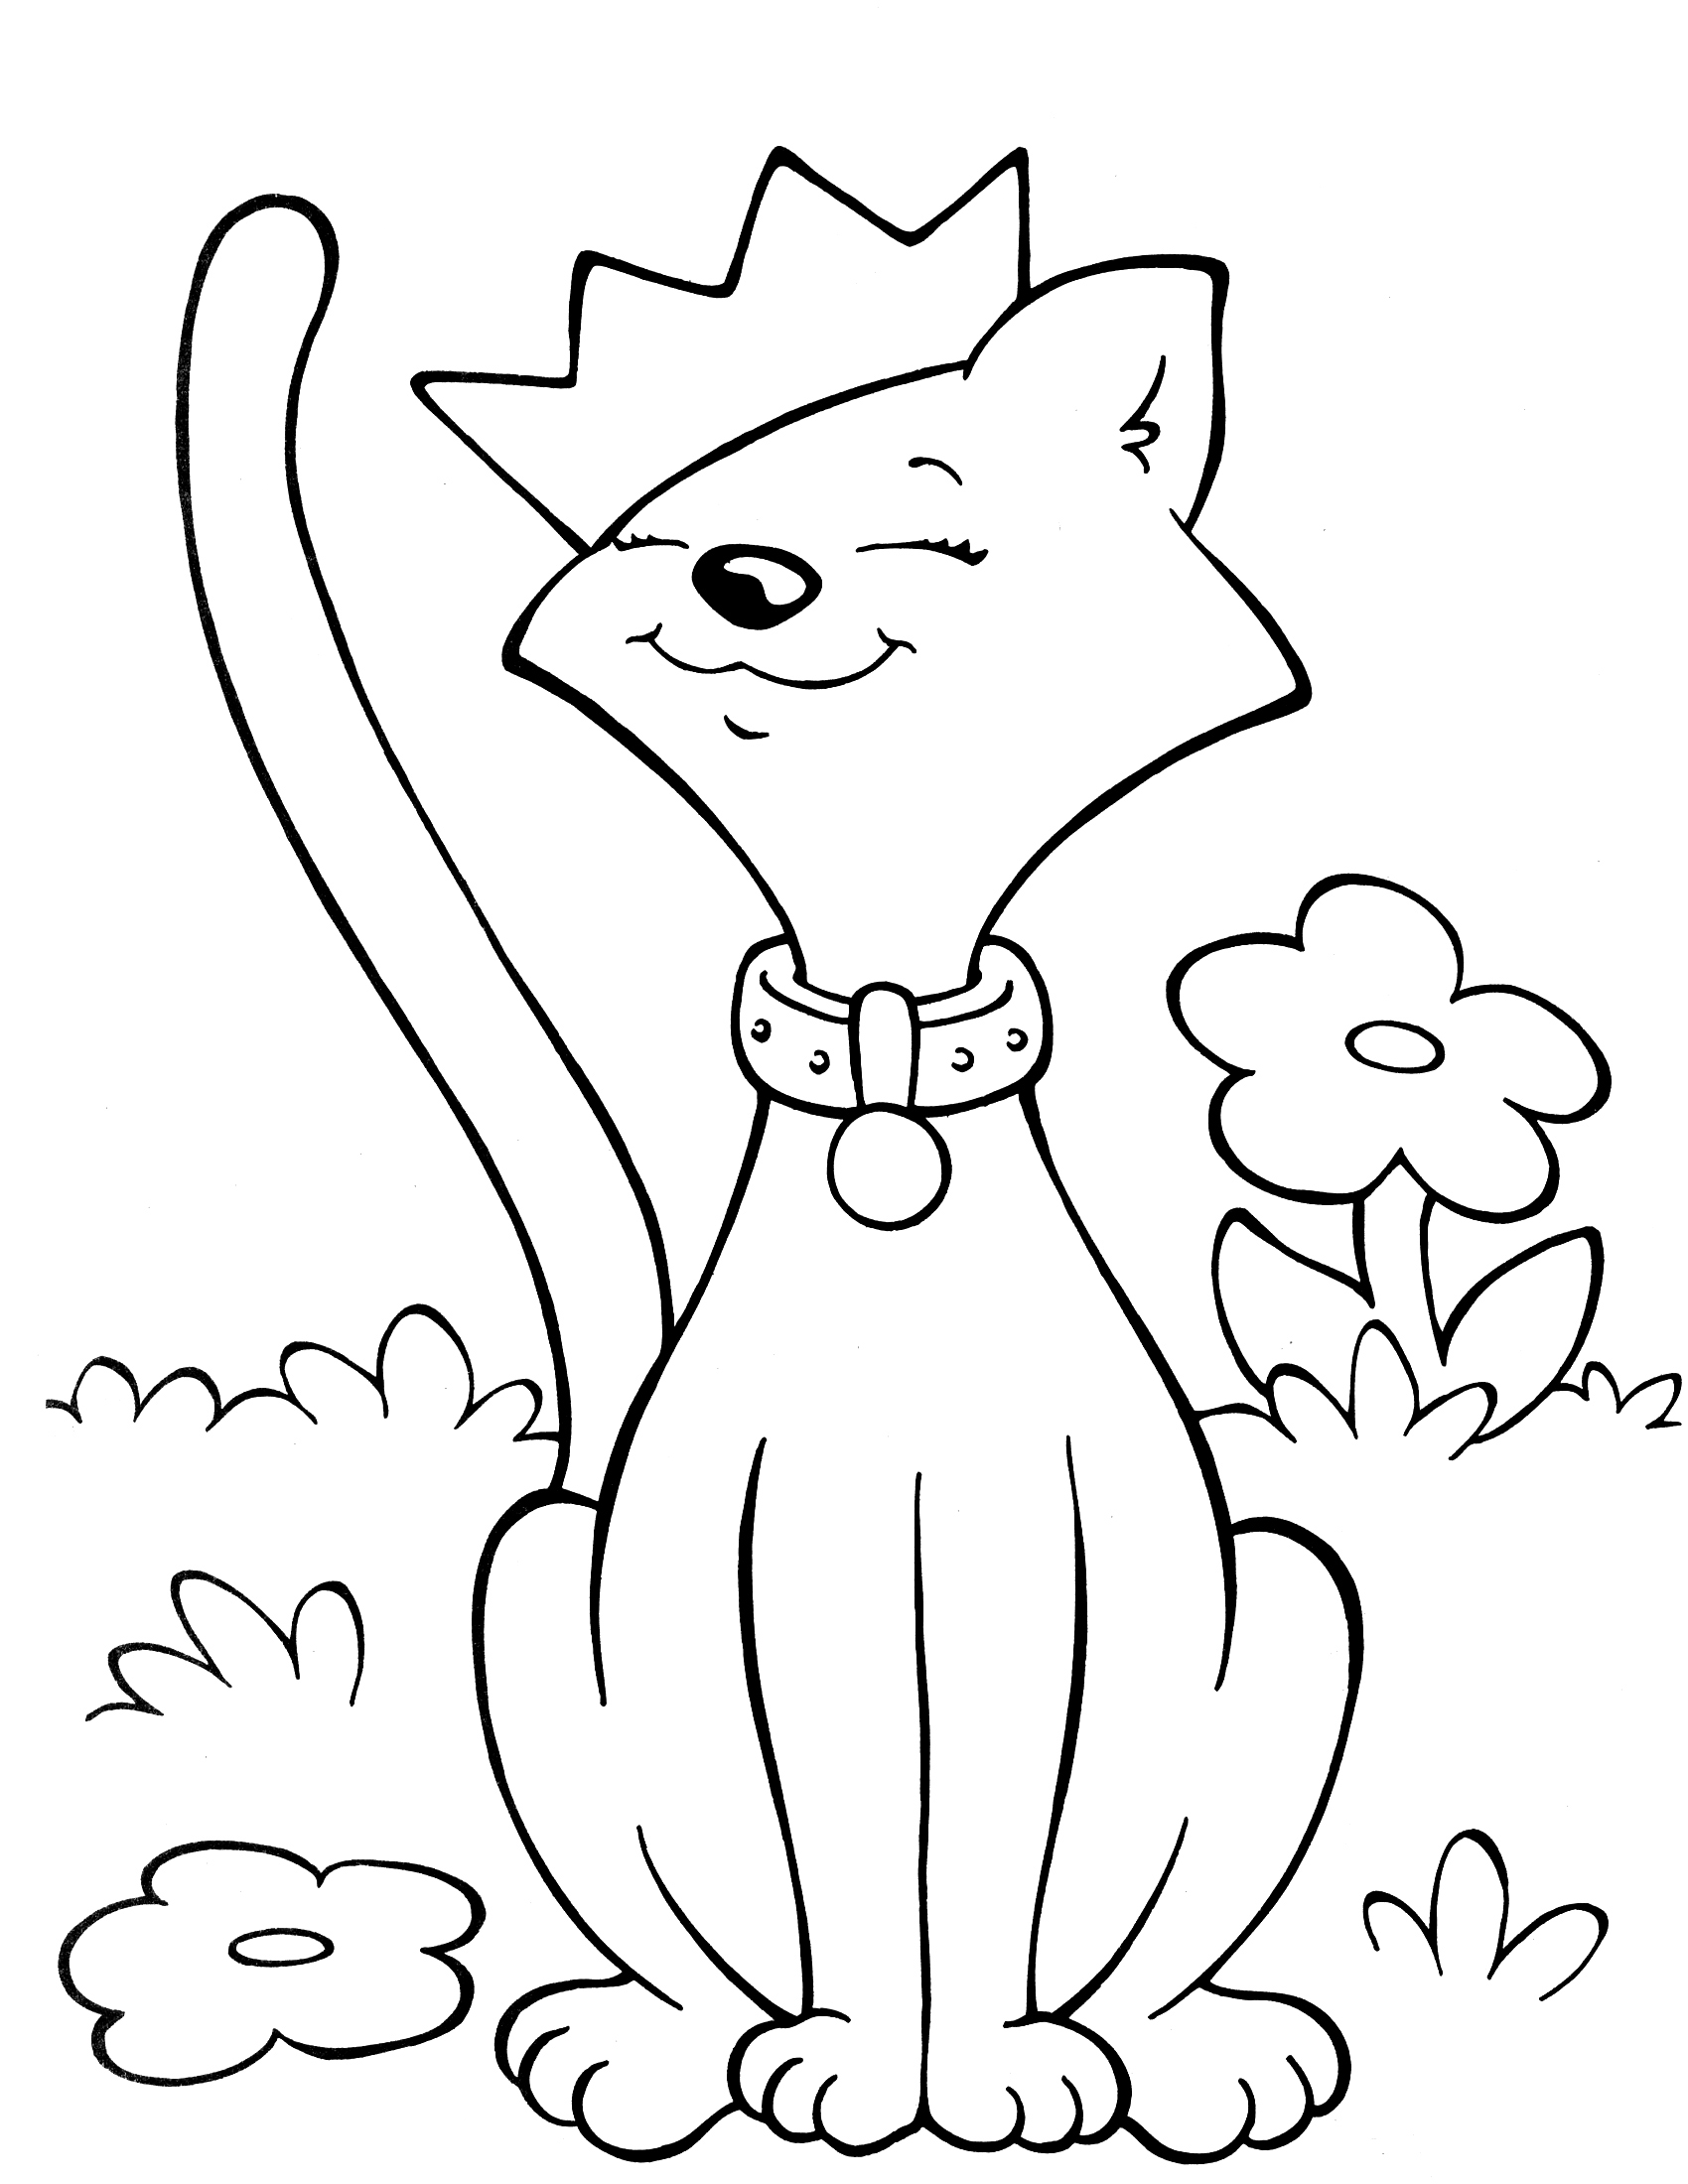 crayola action coloring pages - photo#31